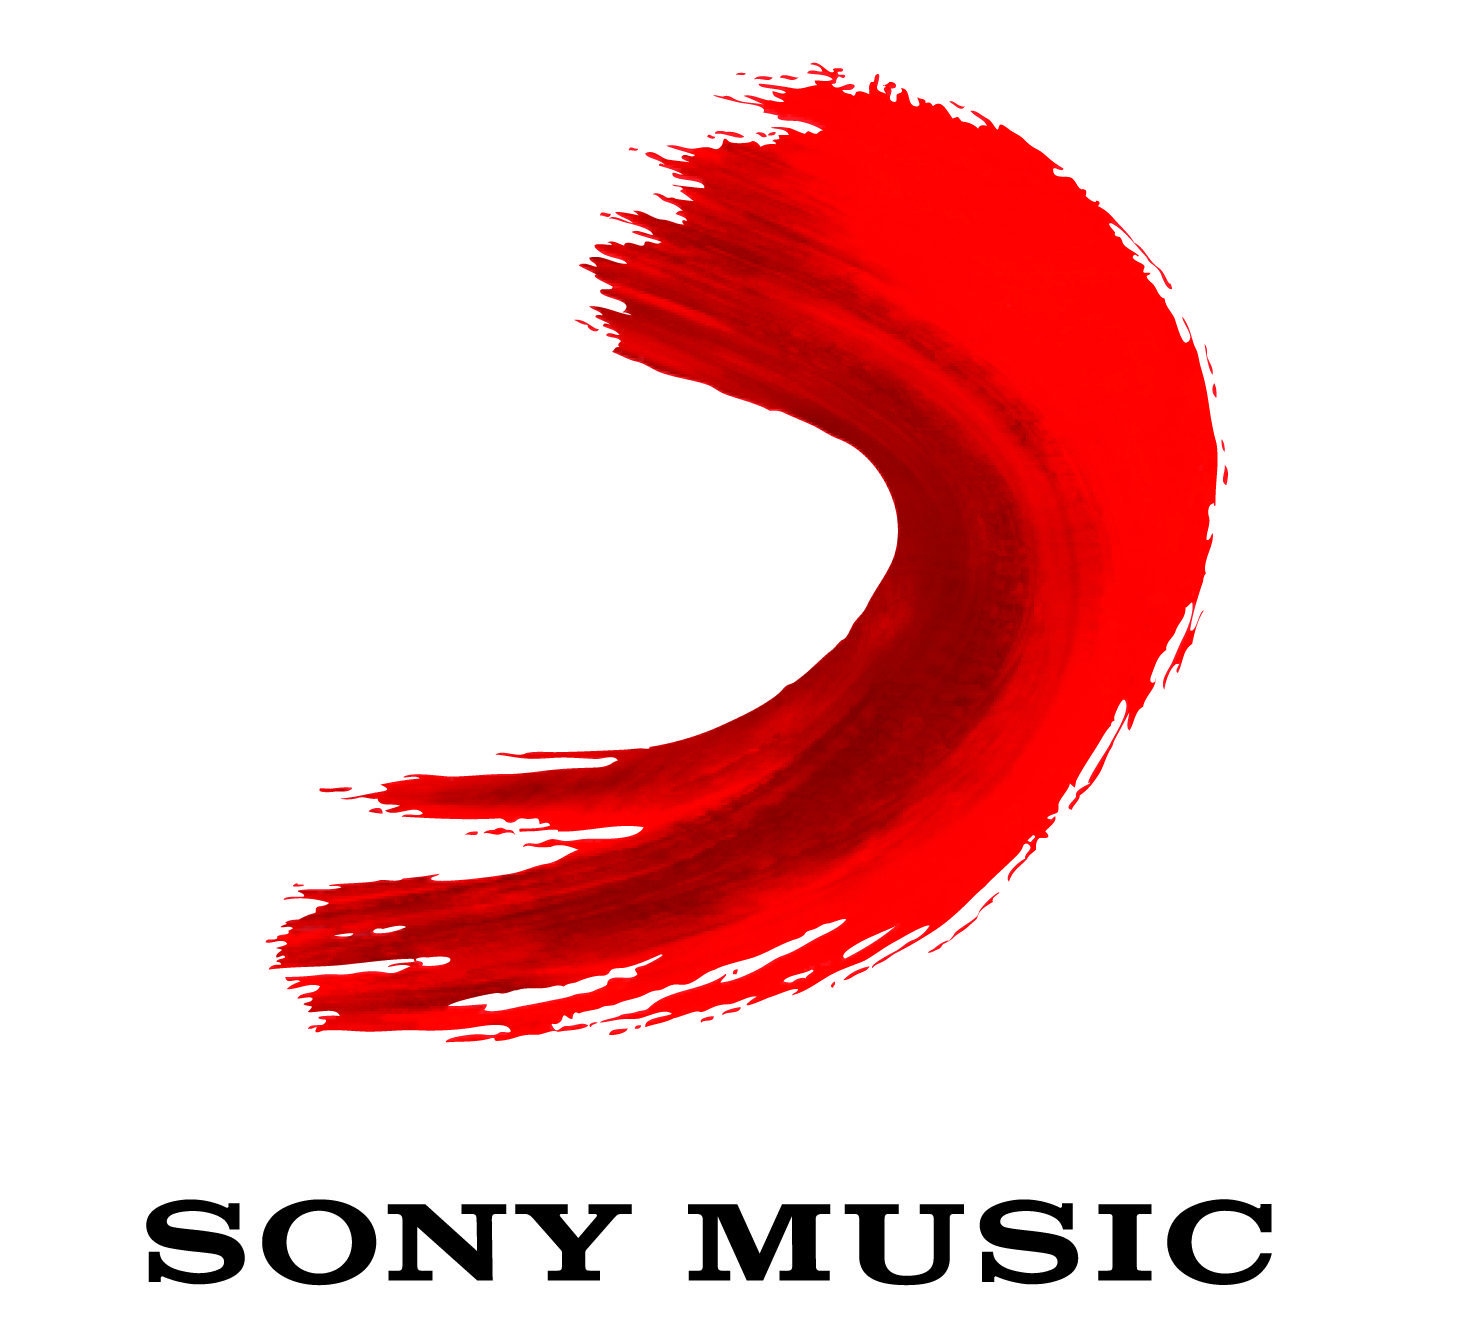 Sony Music another record label to look into working for